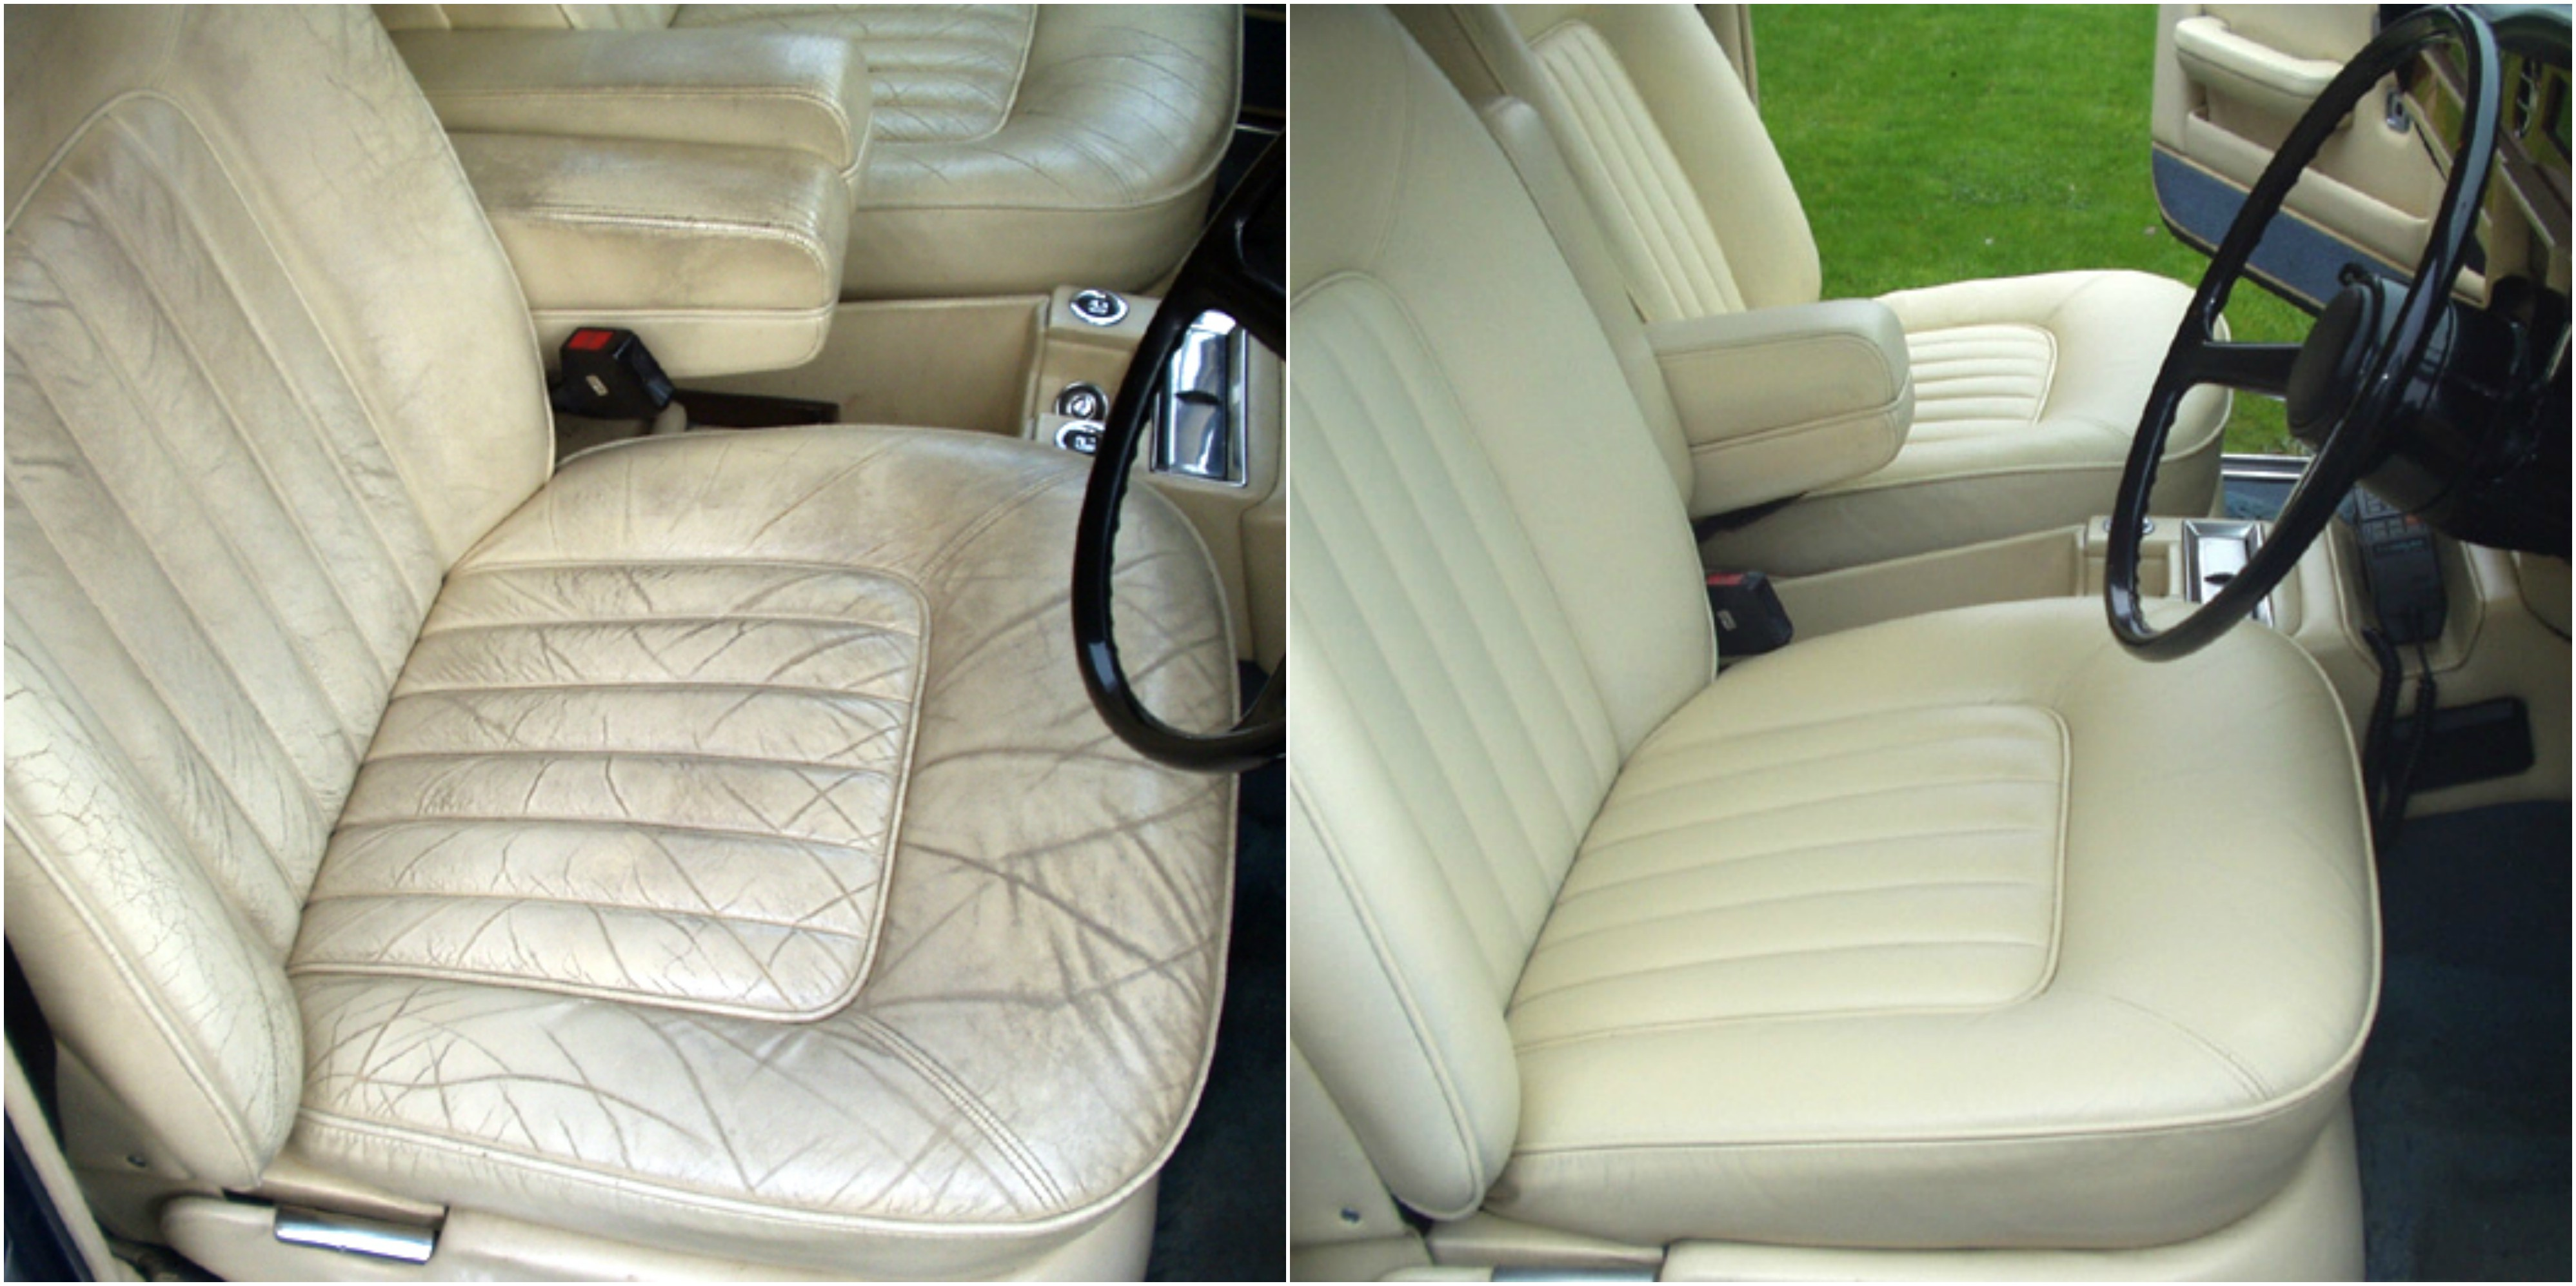 How To Restore The Leather Seats Of A Classic Car Furniture Clinic